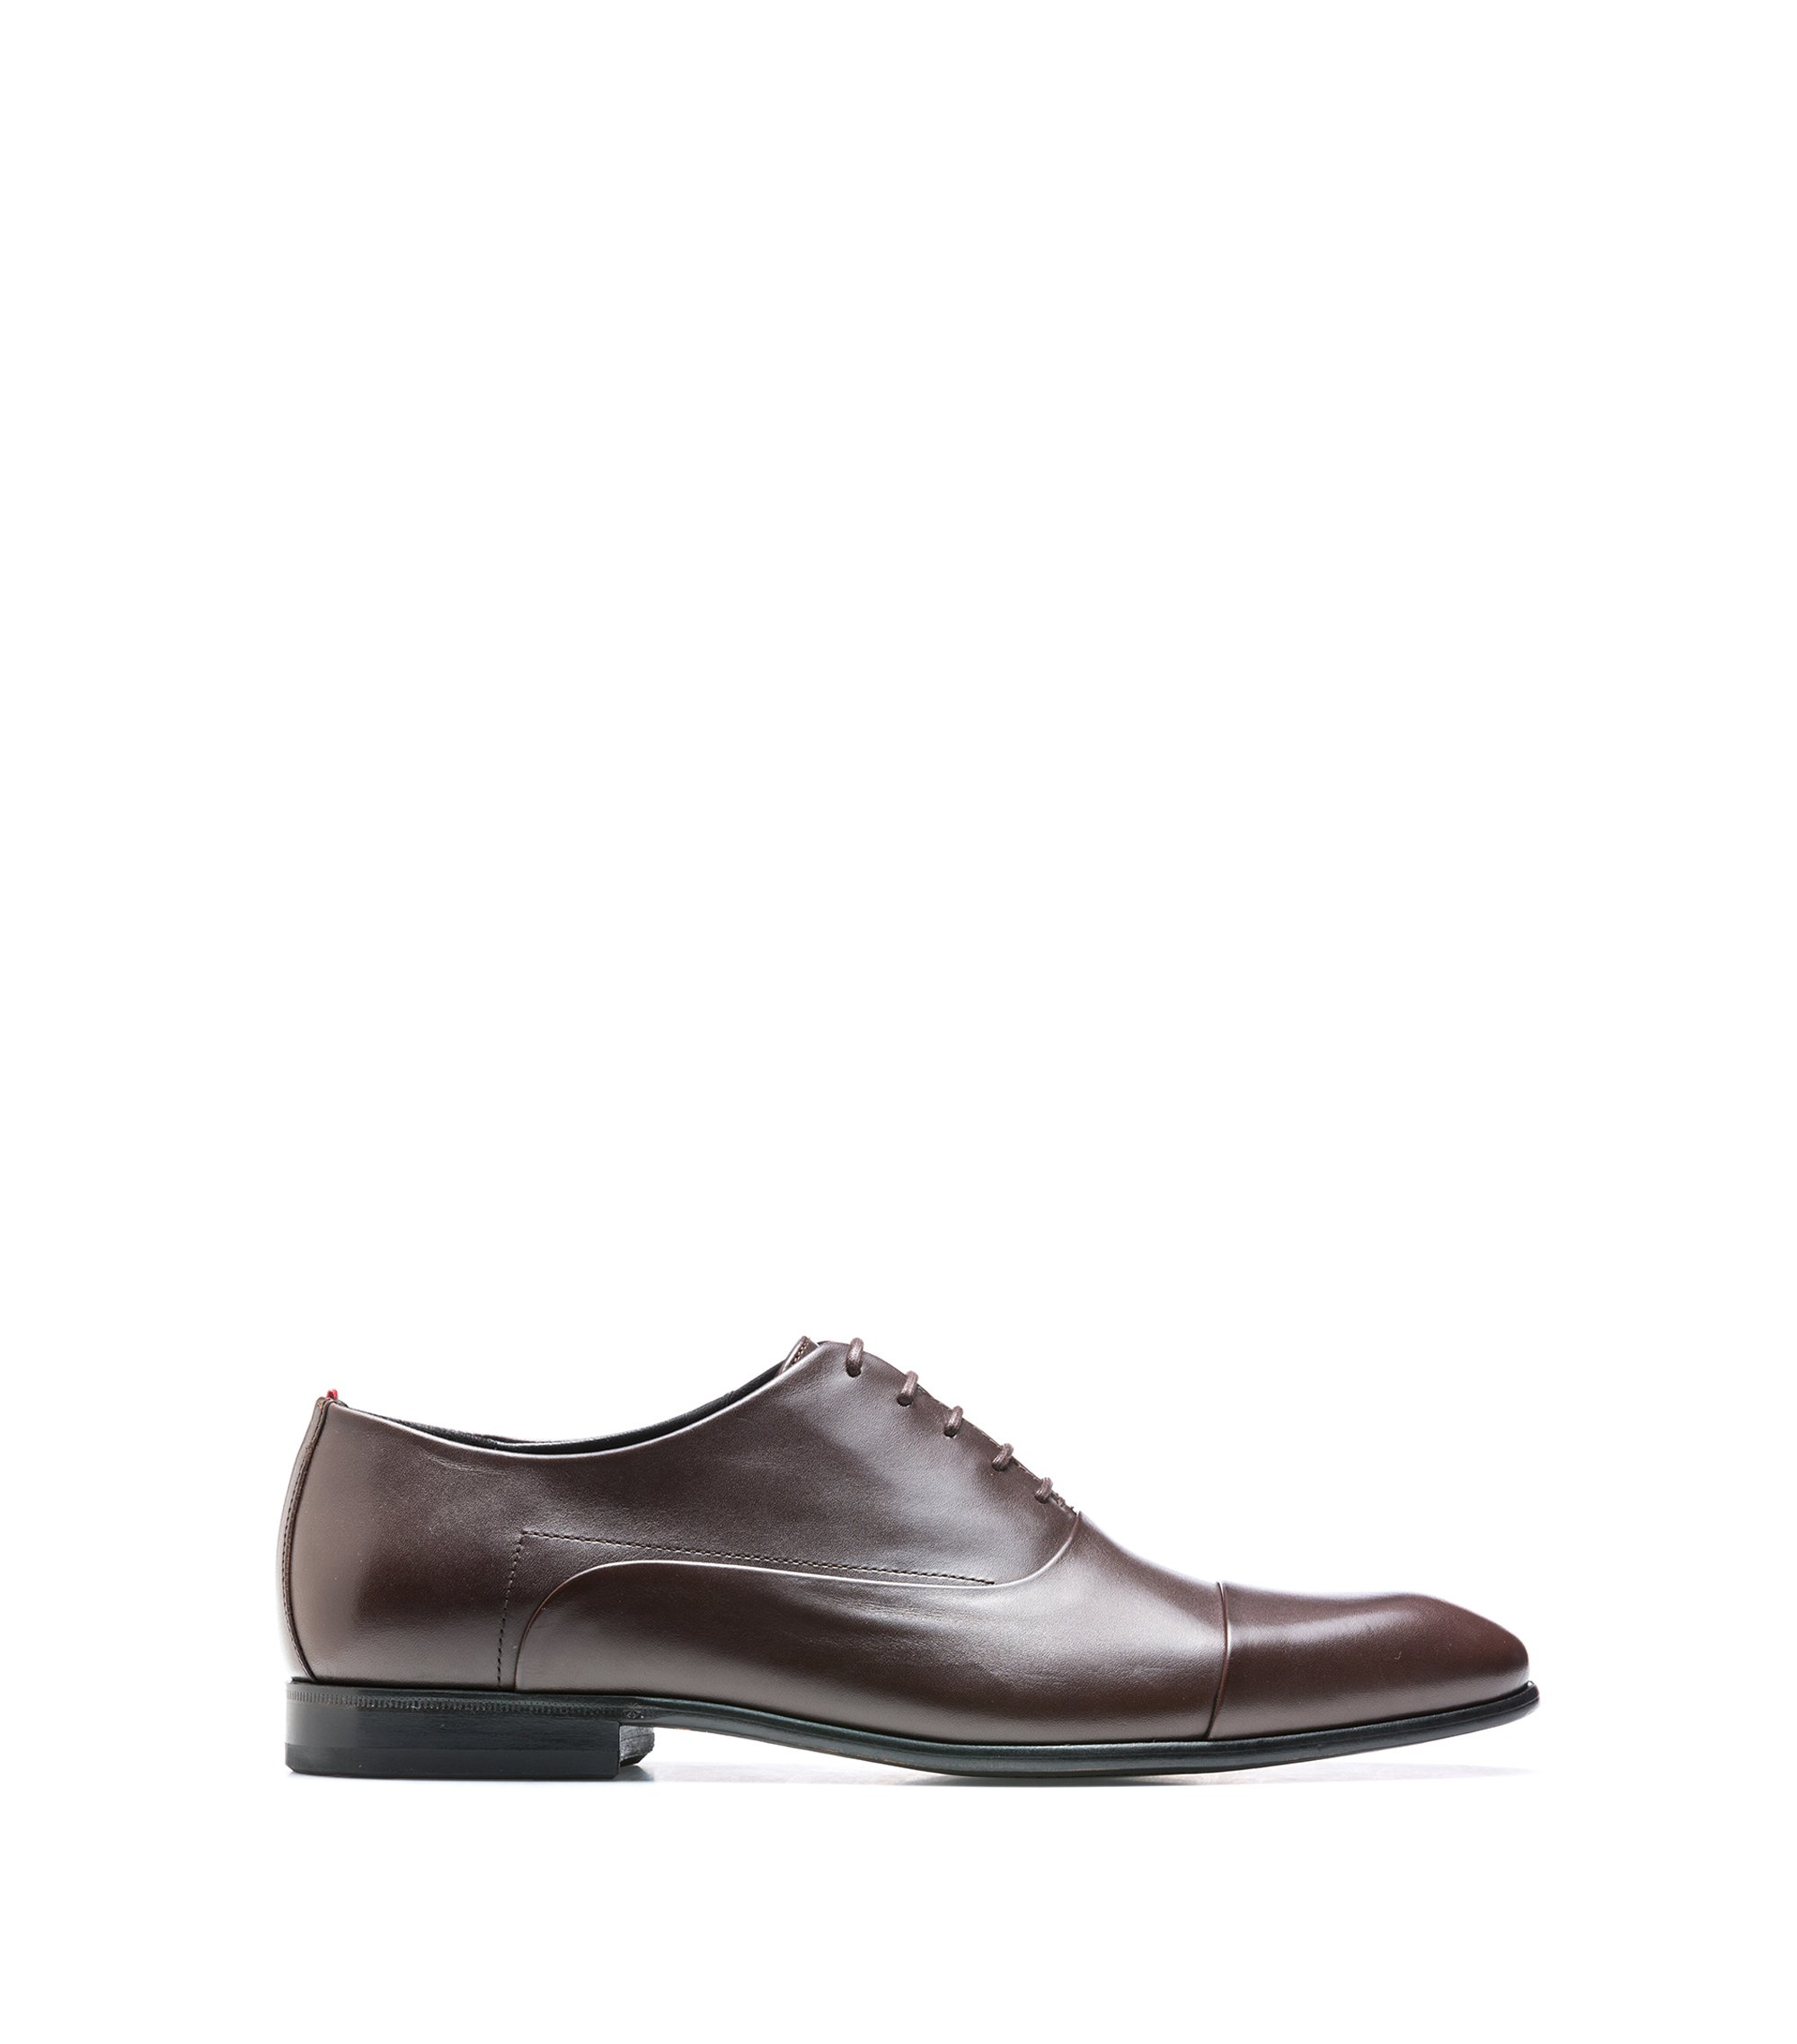 Scarpe oxford in pelle di vitello liscia, Marrone scuro